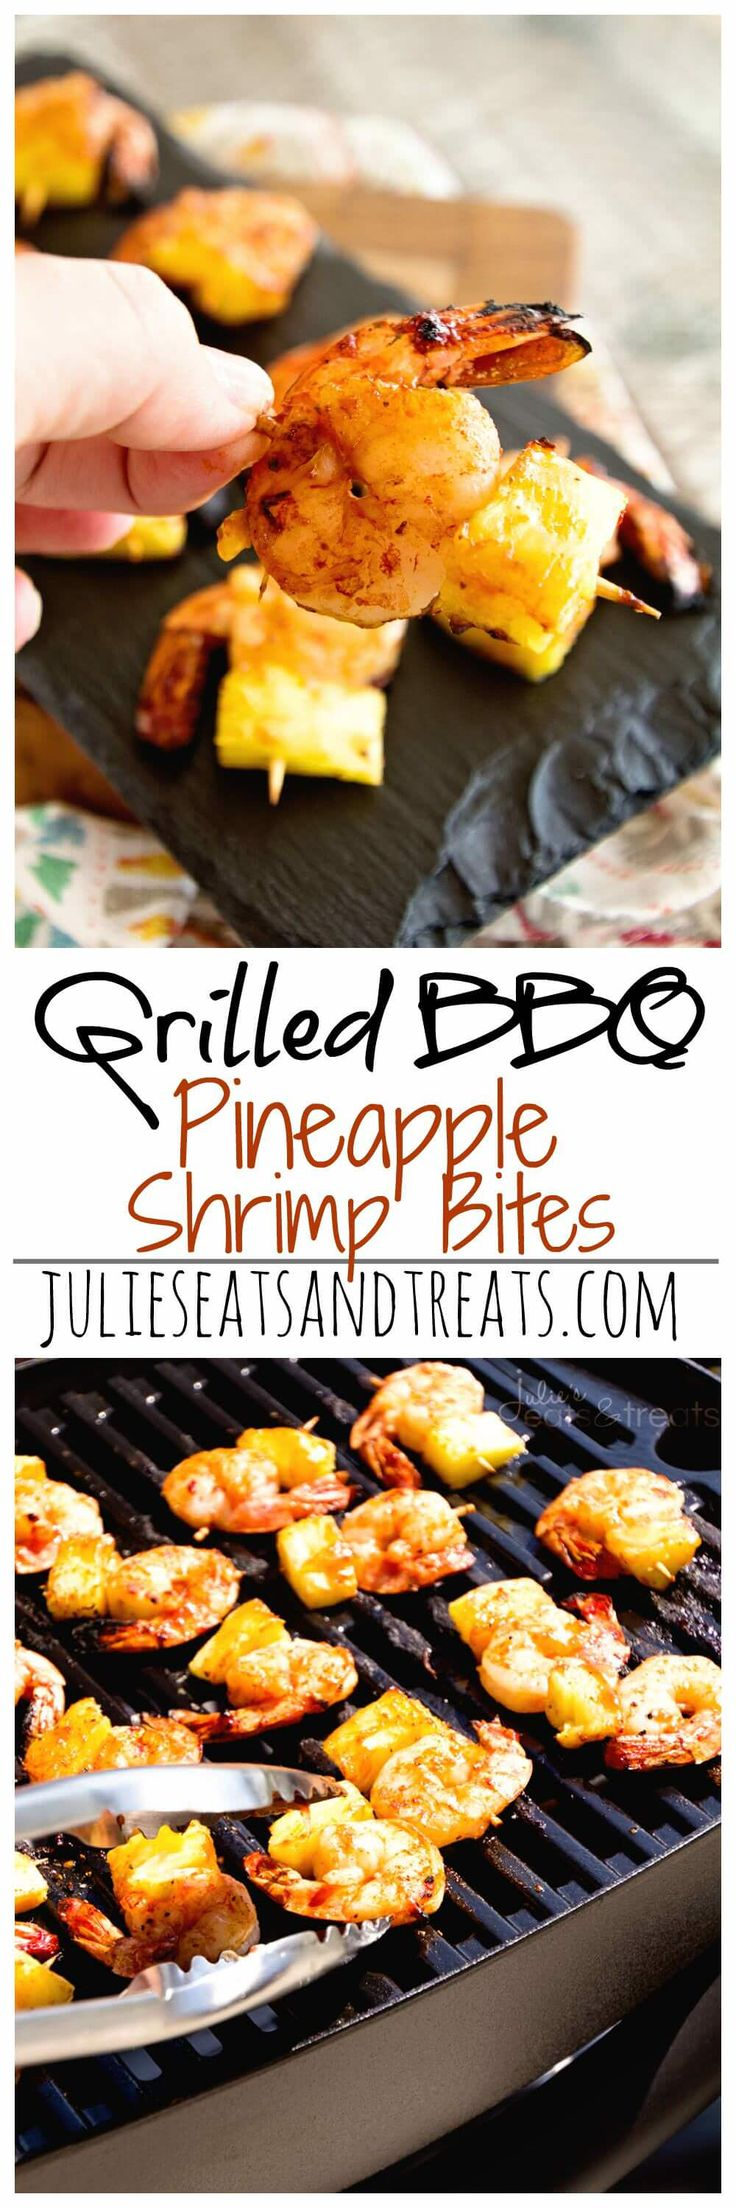 Grilled BBQ Pineapple Shrimp Bites ~ Delicious, Grilled Pineapple and Shrimp Bites Seasoned with BBQ Seasoning and Sauce then Grilled to Perfection! ~ https://www.julieseatsandtreats.com